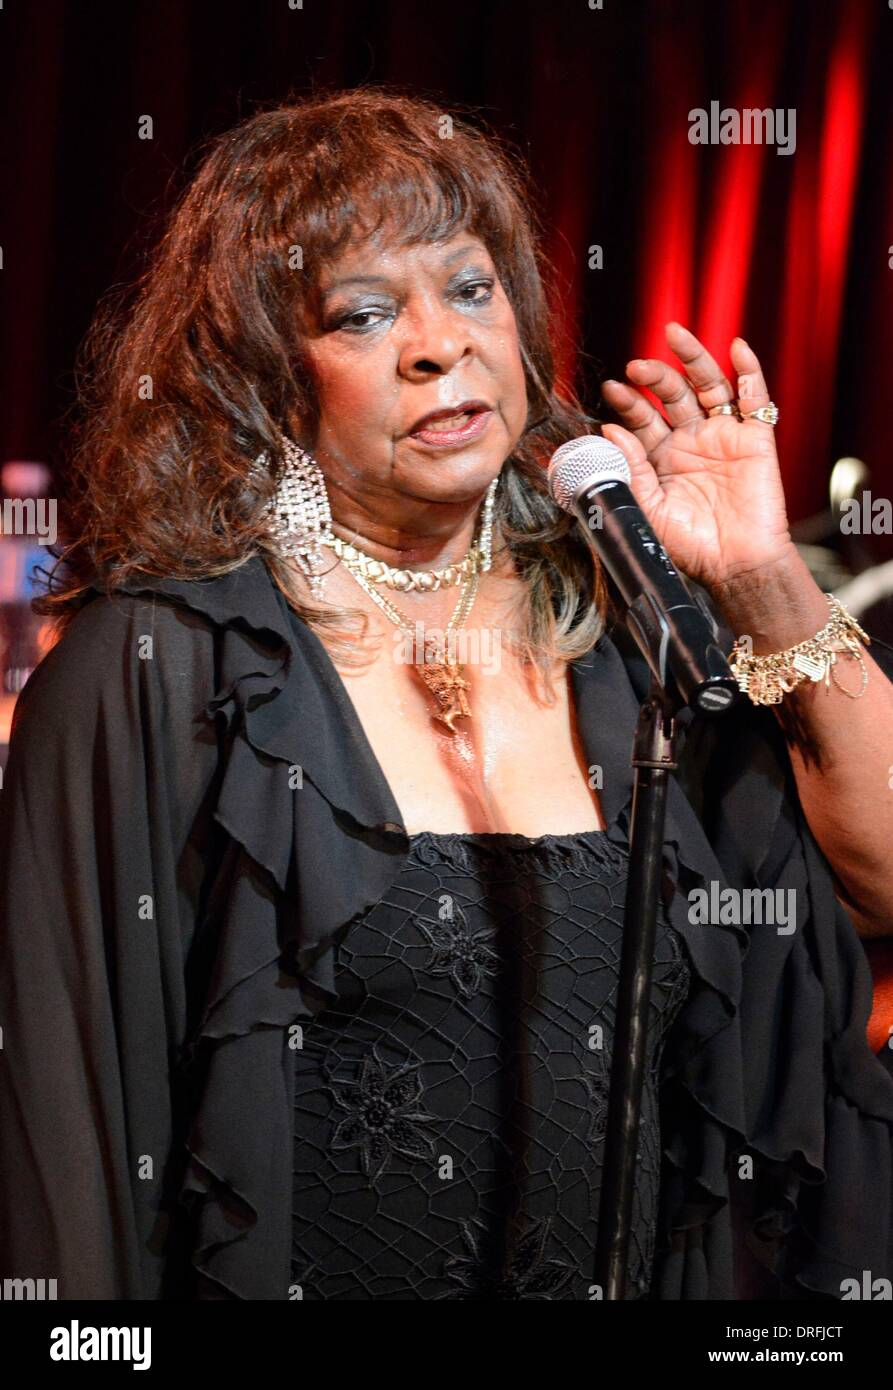 New York, NY, USA. 24th Jan, 2014. Martha Reeves in attendance for Martha Reeves Concert at BB Kings, B.B. King Blues Club and Grill, New York, NY January 24, 2014. Credit:  Derek Storm/Everett Collection/Alamy Live News - Stock Image